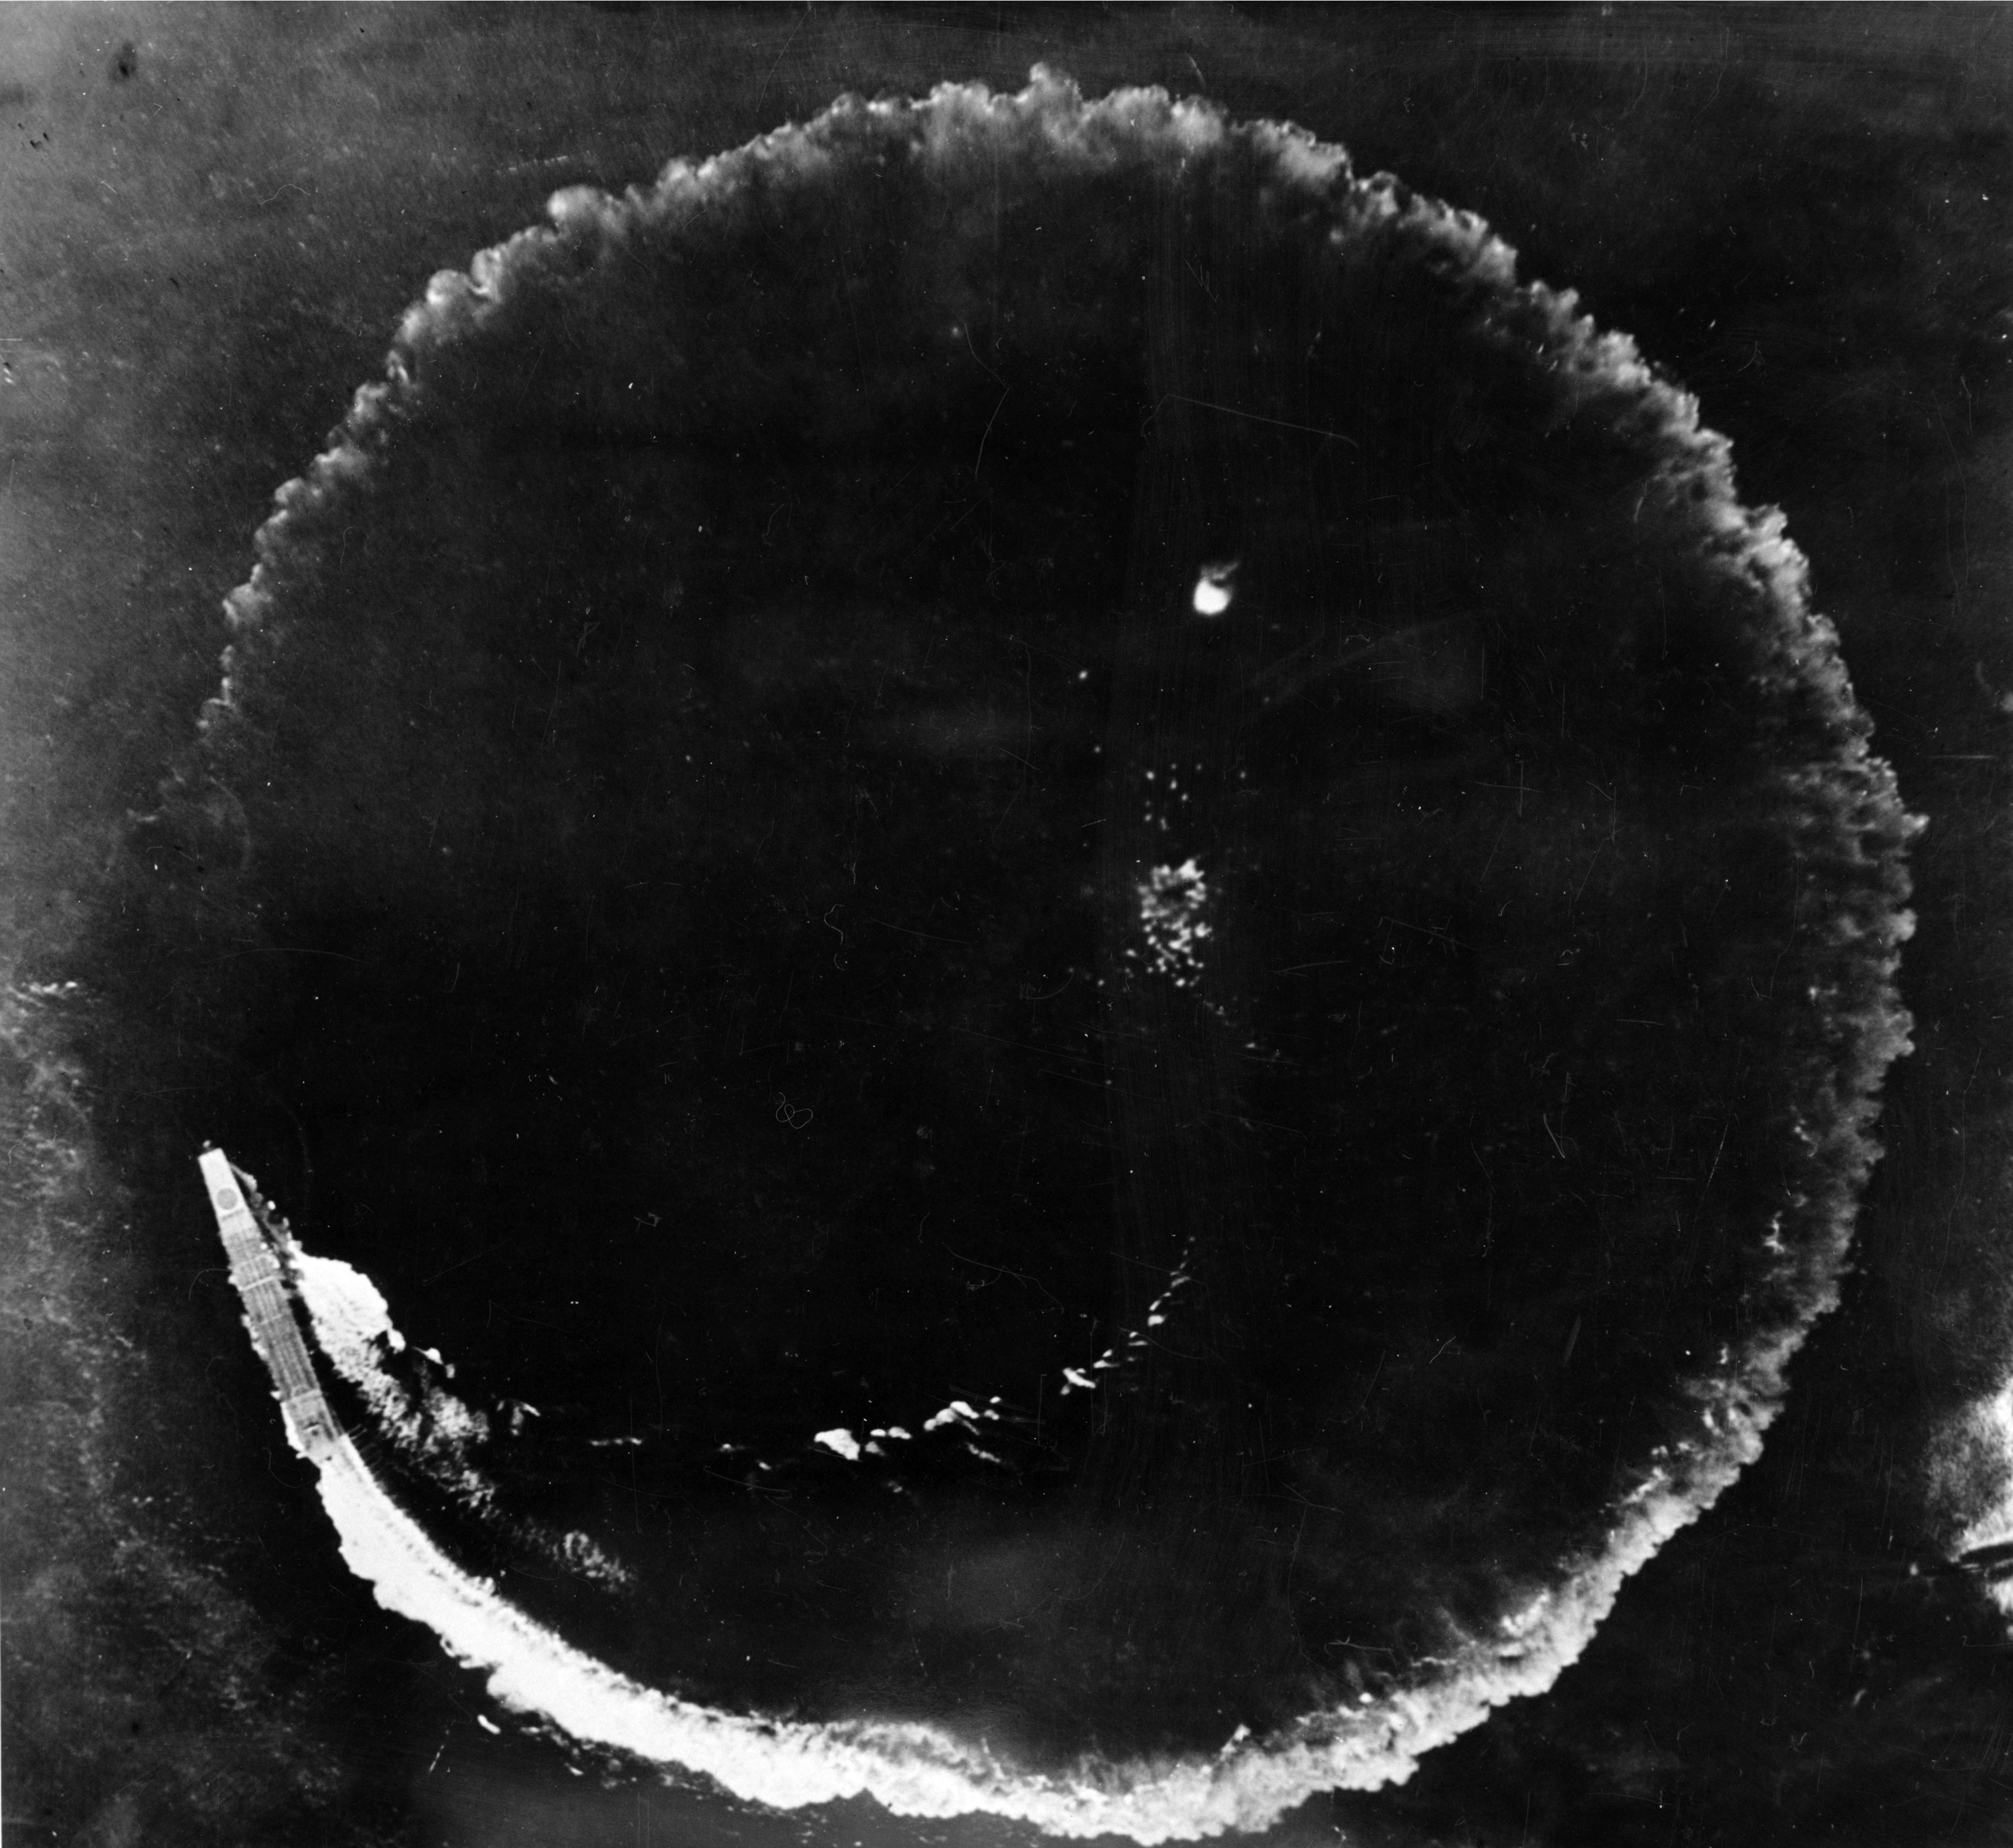 Файл:Aerial view of the Japanese aircraft carrier Sōryū evading an air attack on 4 June 1942 (fsa.8e00397).jpg